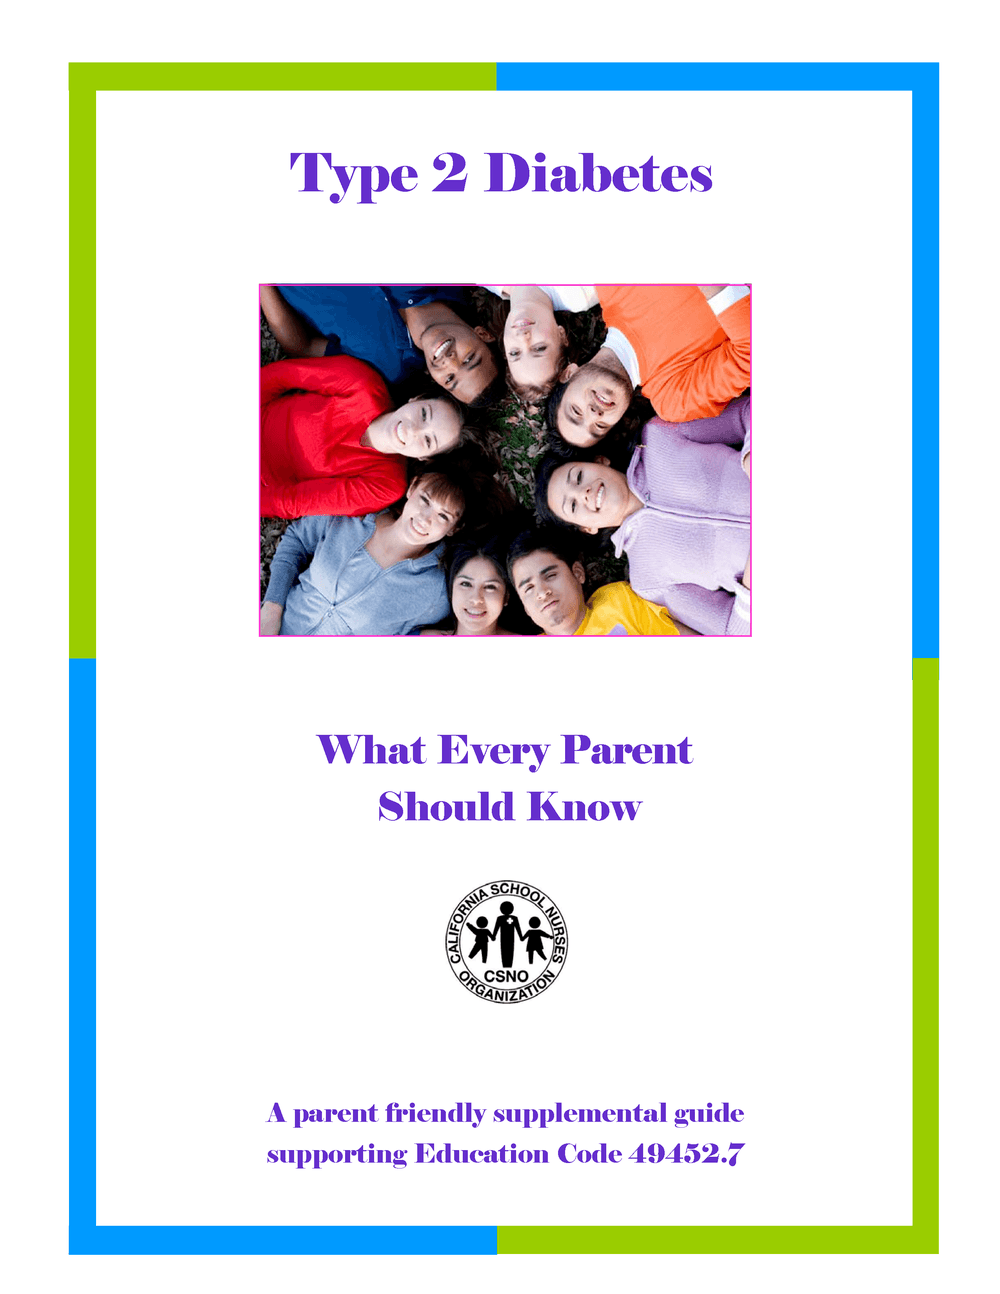 Type 2 Diabetes parent brochure